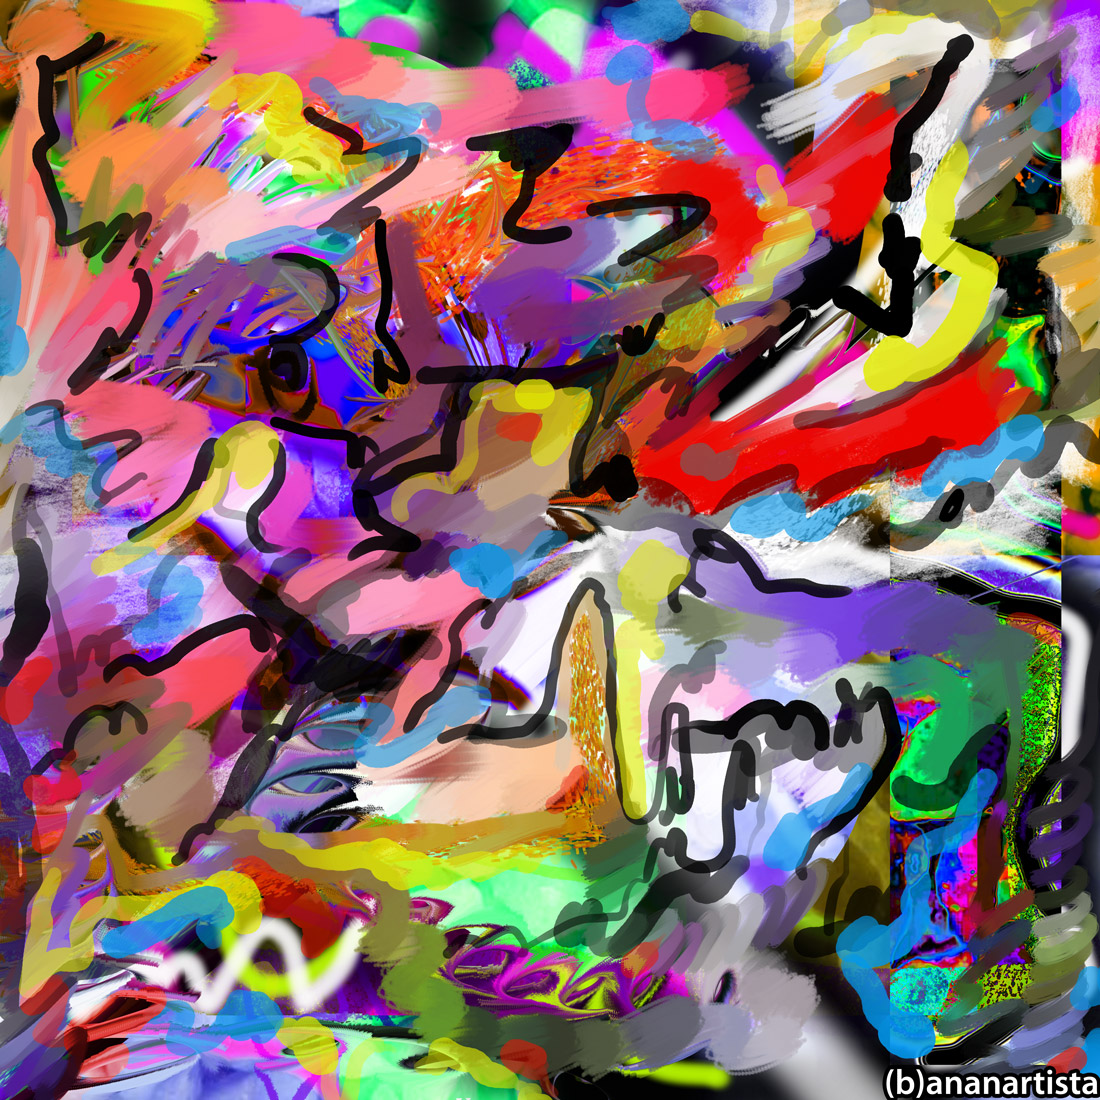 tempeste ormonali: abstract digital art by (b)ananartista sbuff